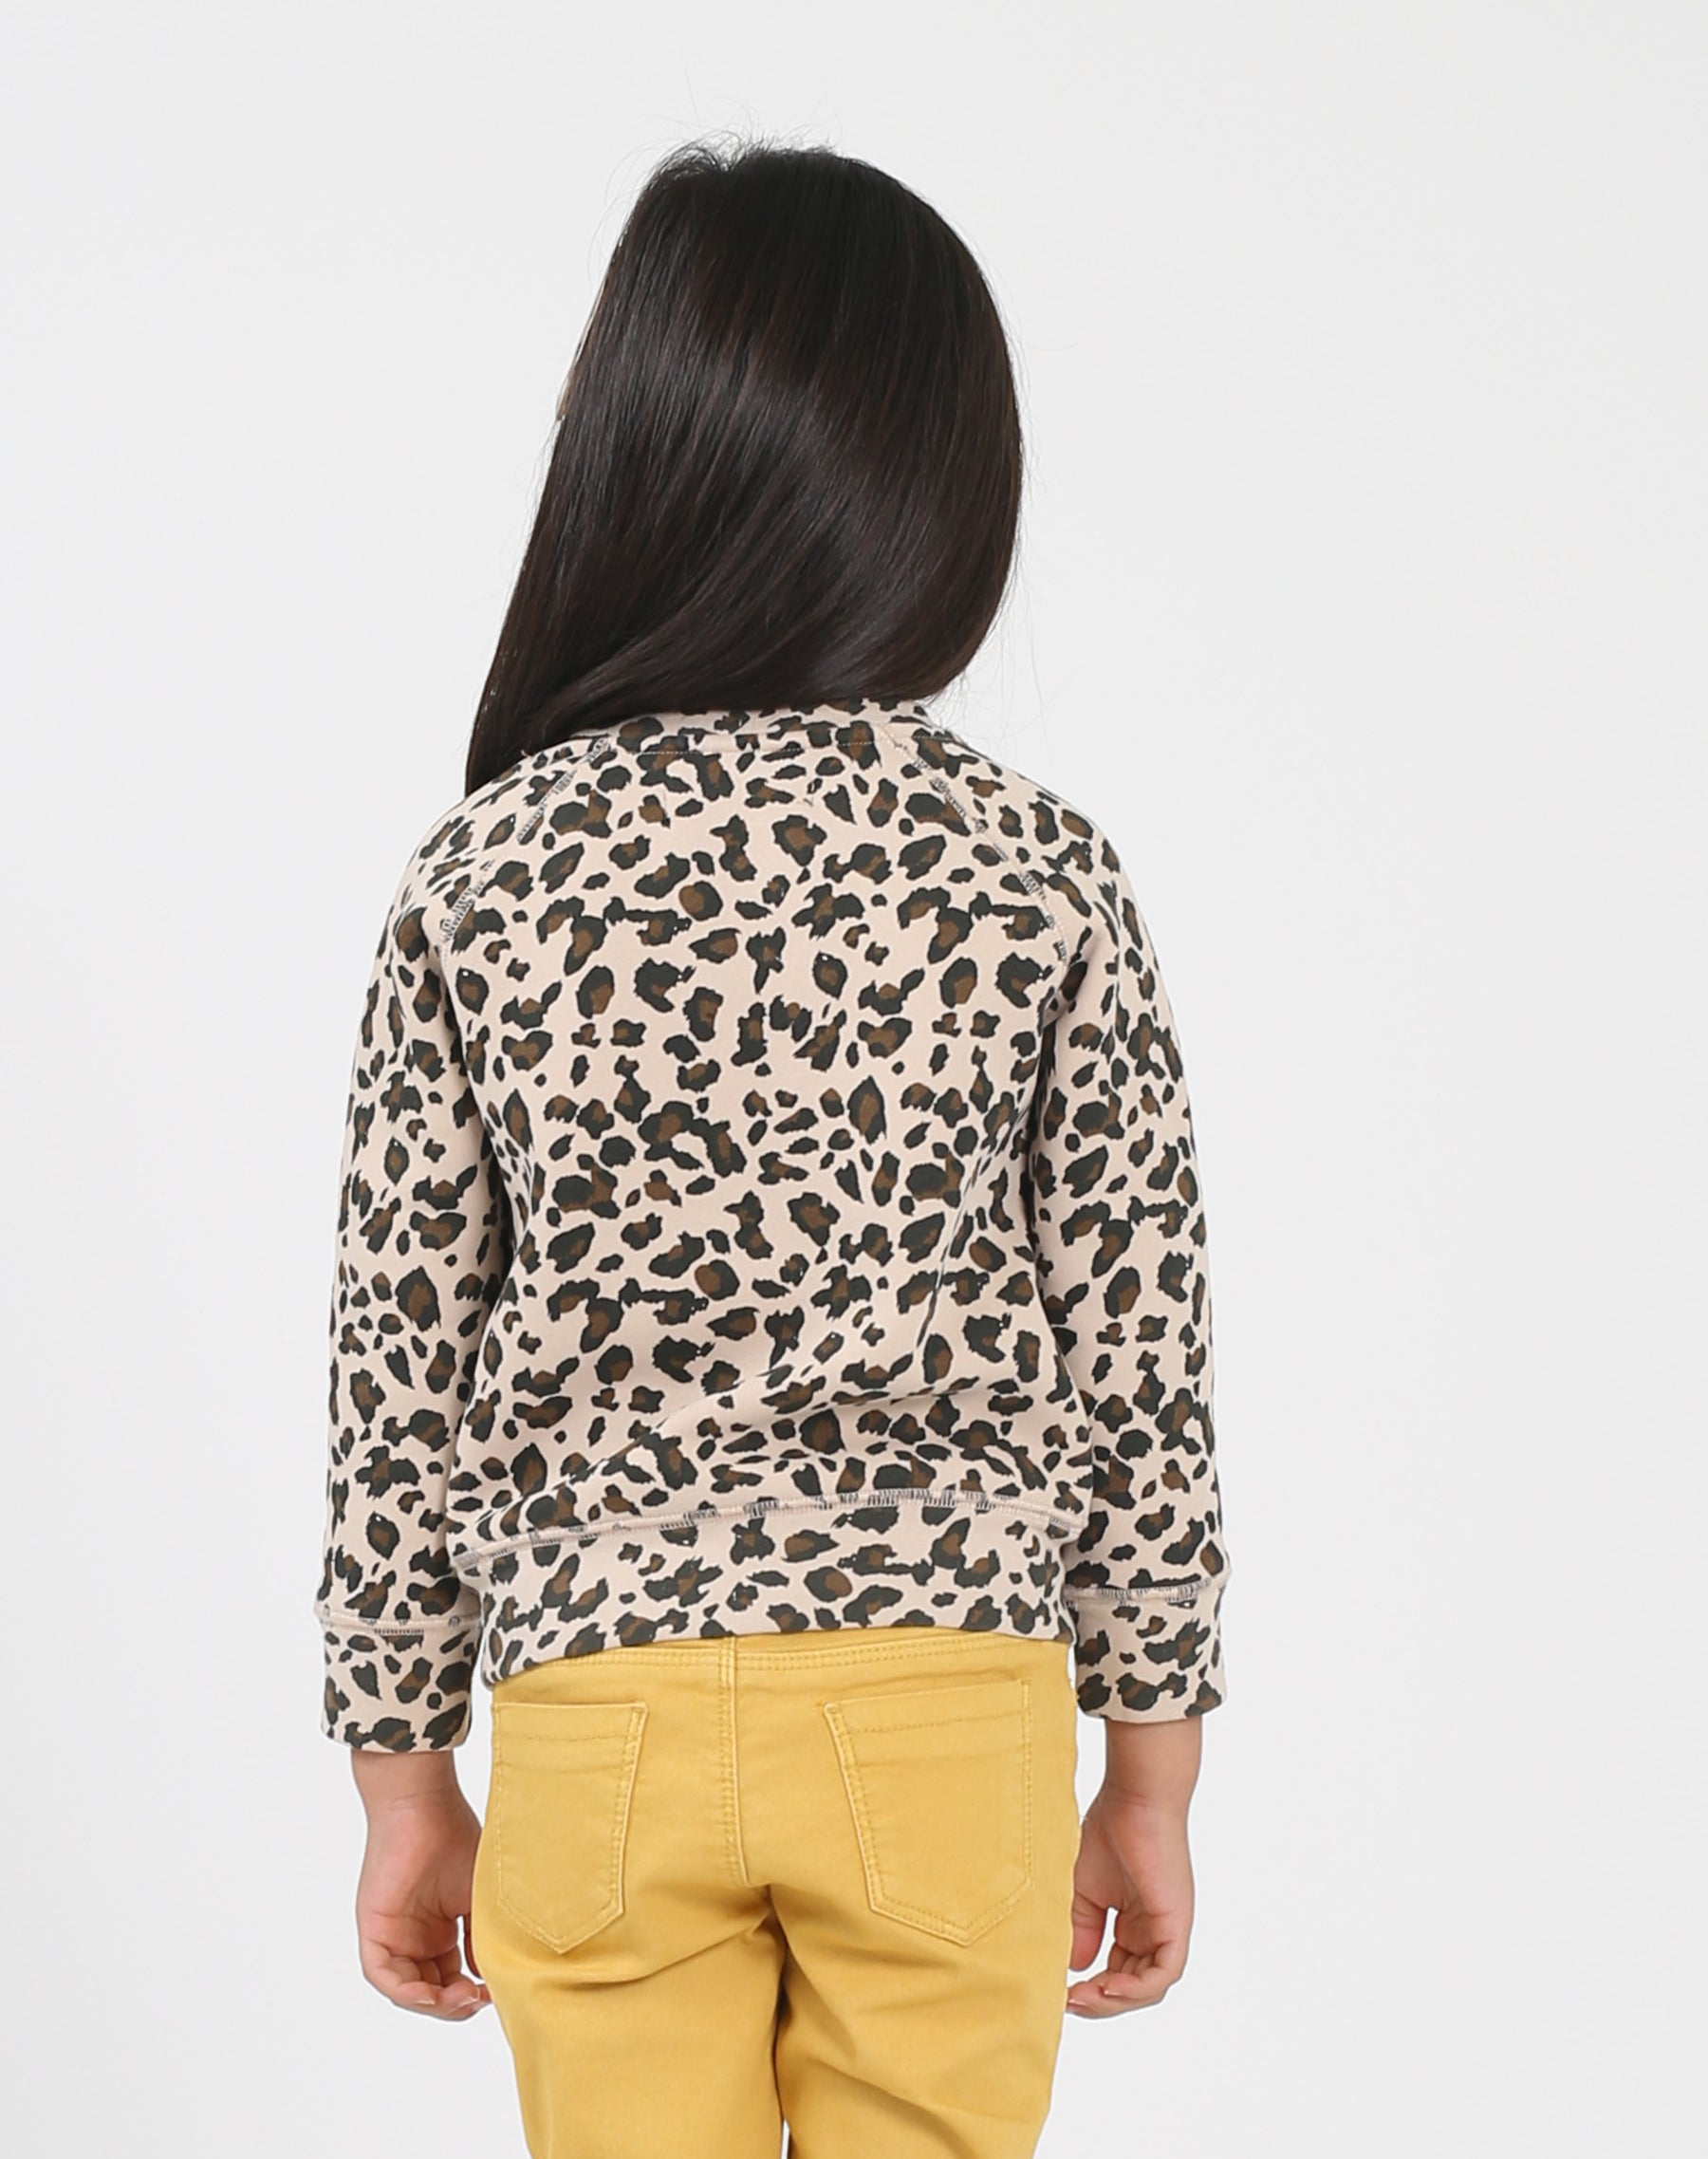 Photo of the back of the Jet Black Little Babes classic crew neck sweatshirt in leopard by Brunette the Label.